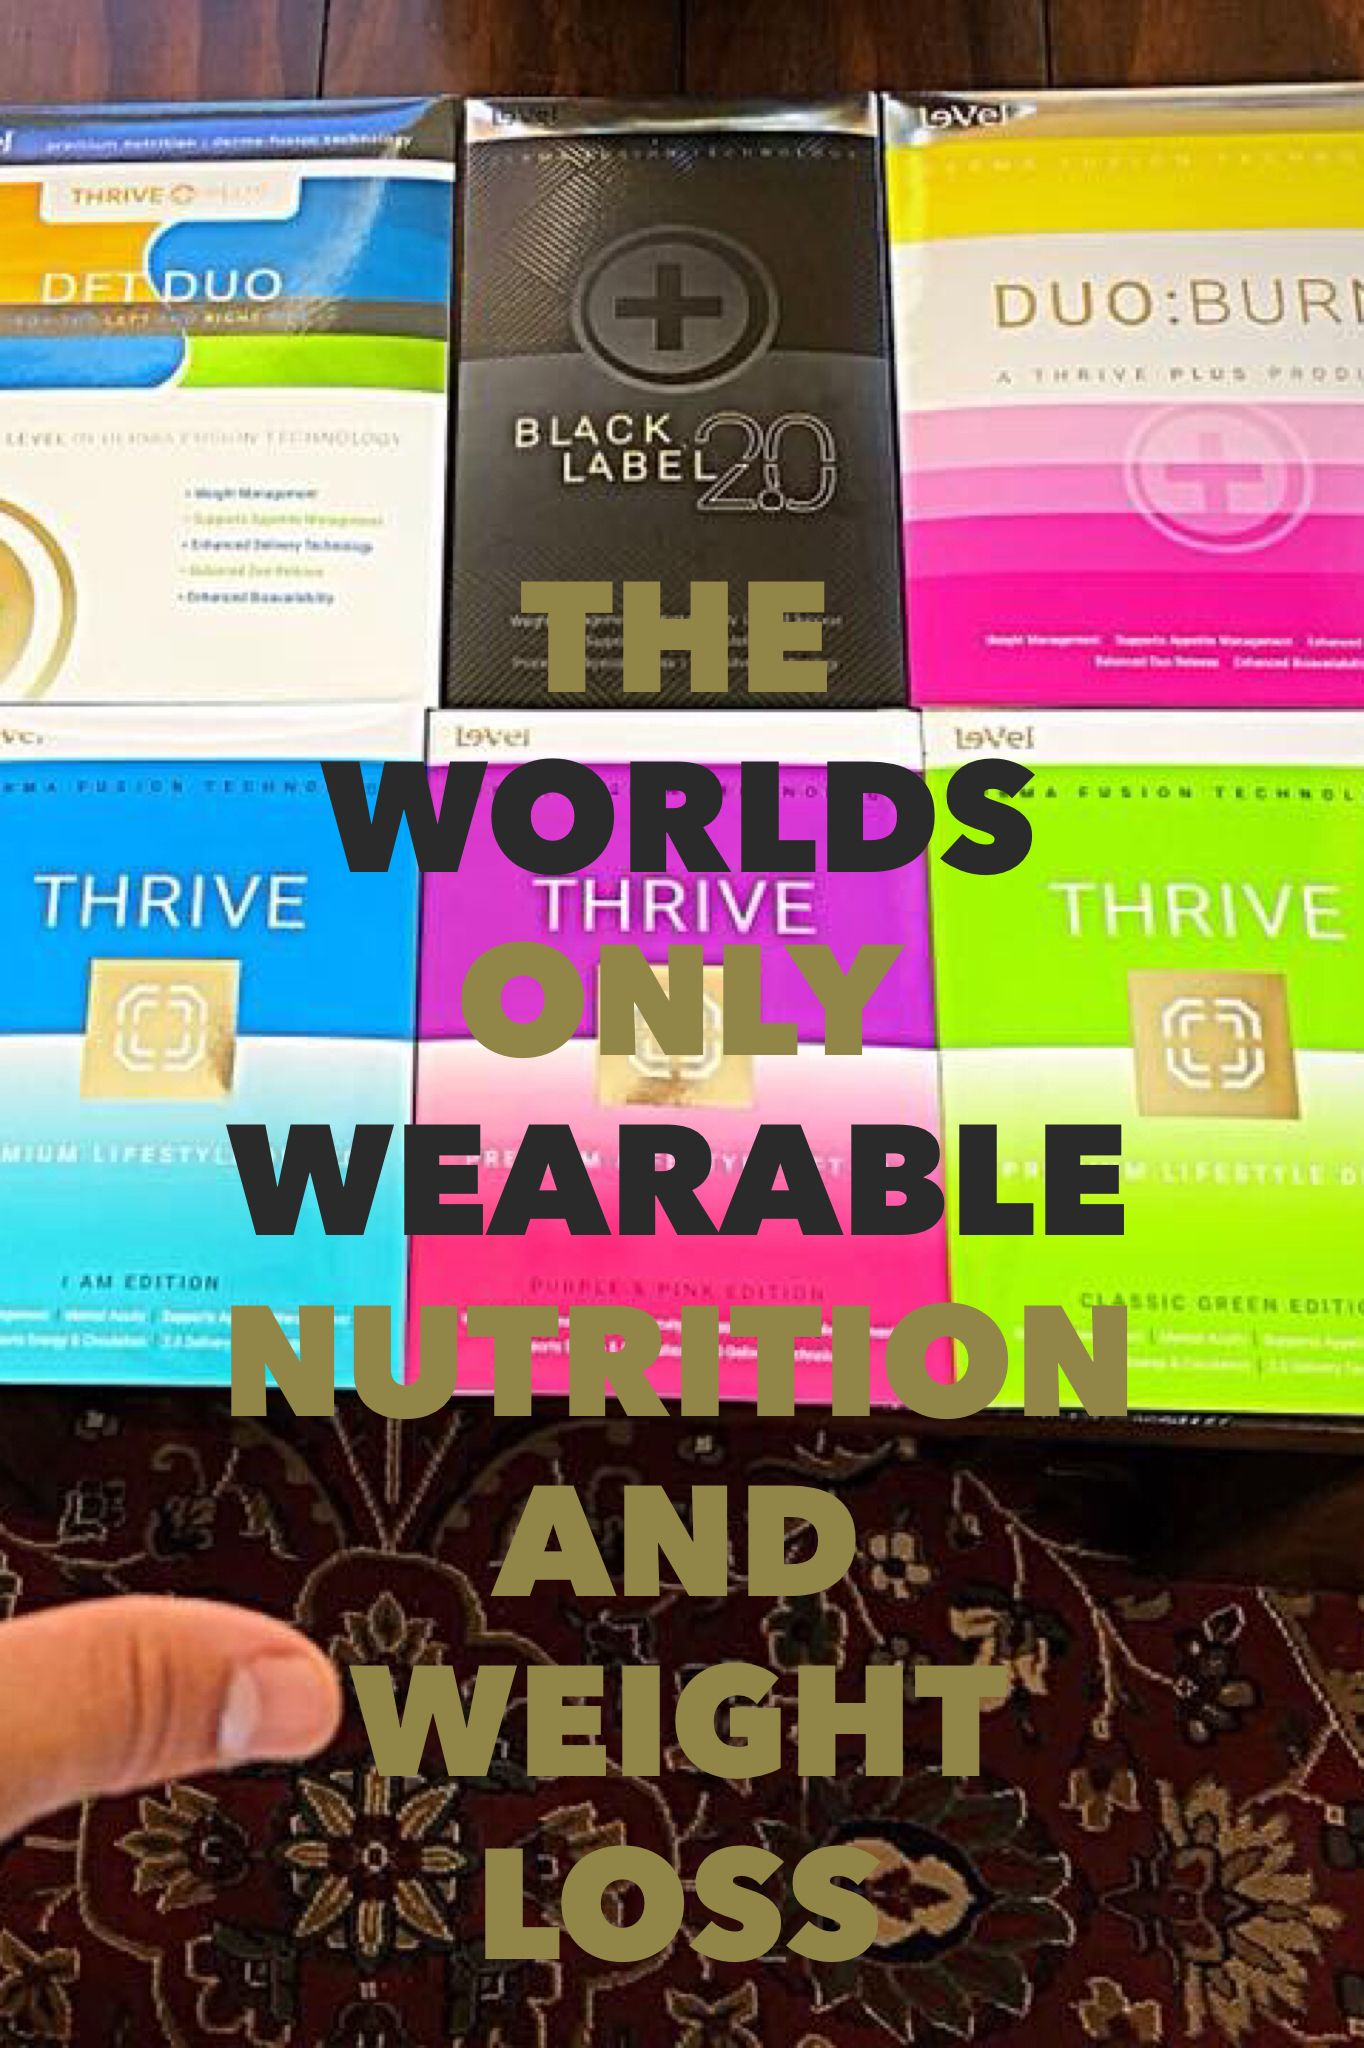 PREMIUM WEARABLE NUTRITION Energy Weight Loss Mental Clarity Mood Support Calming General Aches. It's a not a diet it's a lifestyle change.